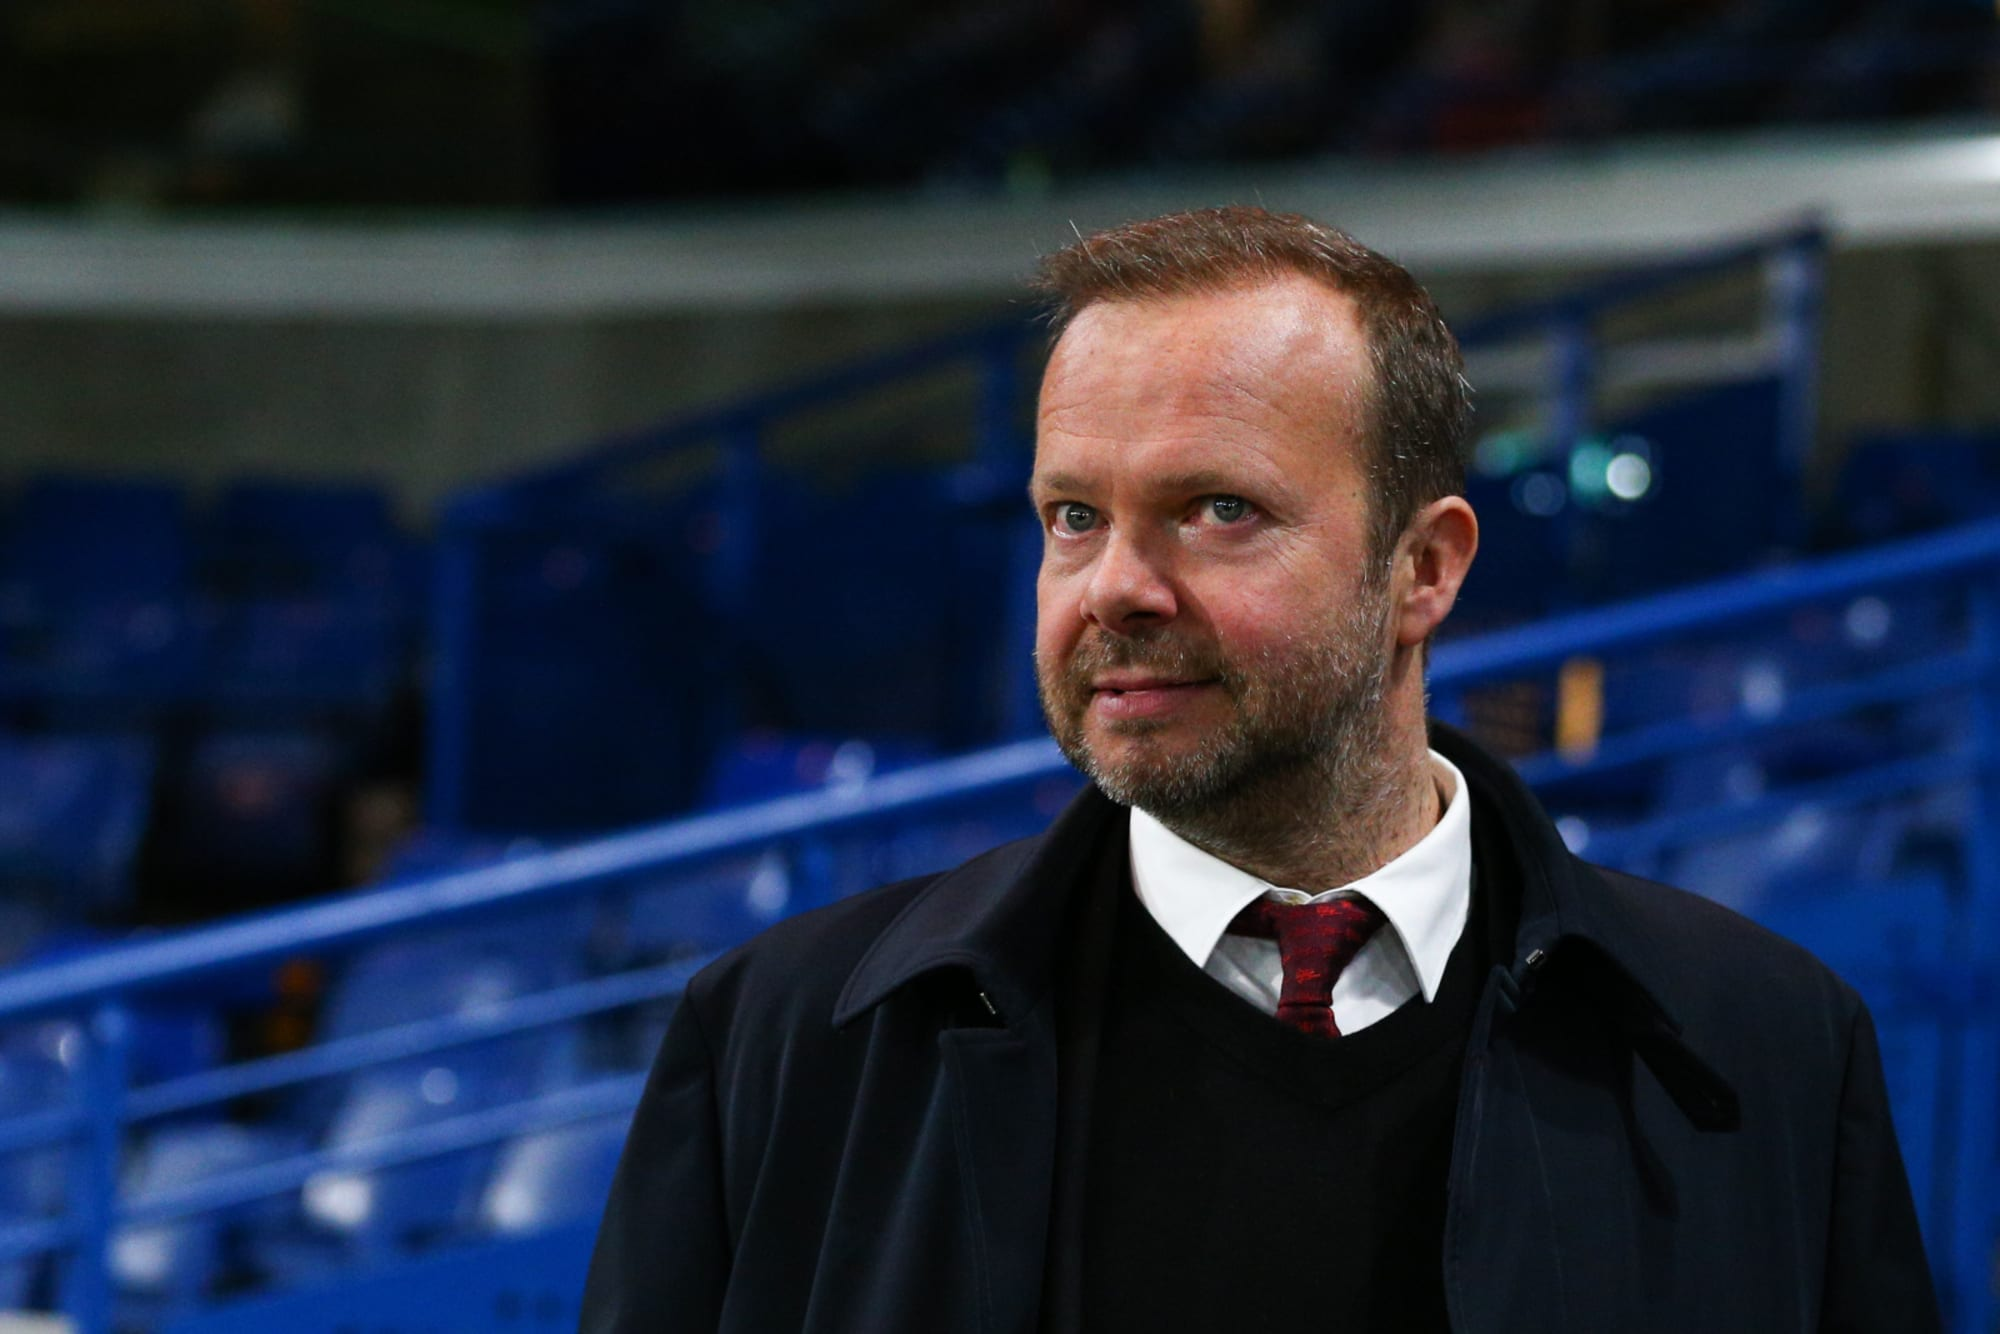 Manchester United: Ed Woodward wants one other transfer after Sancho